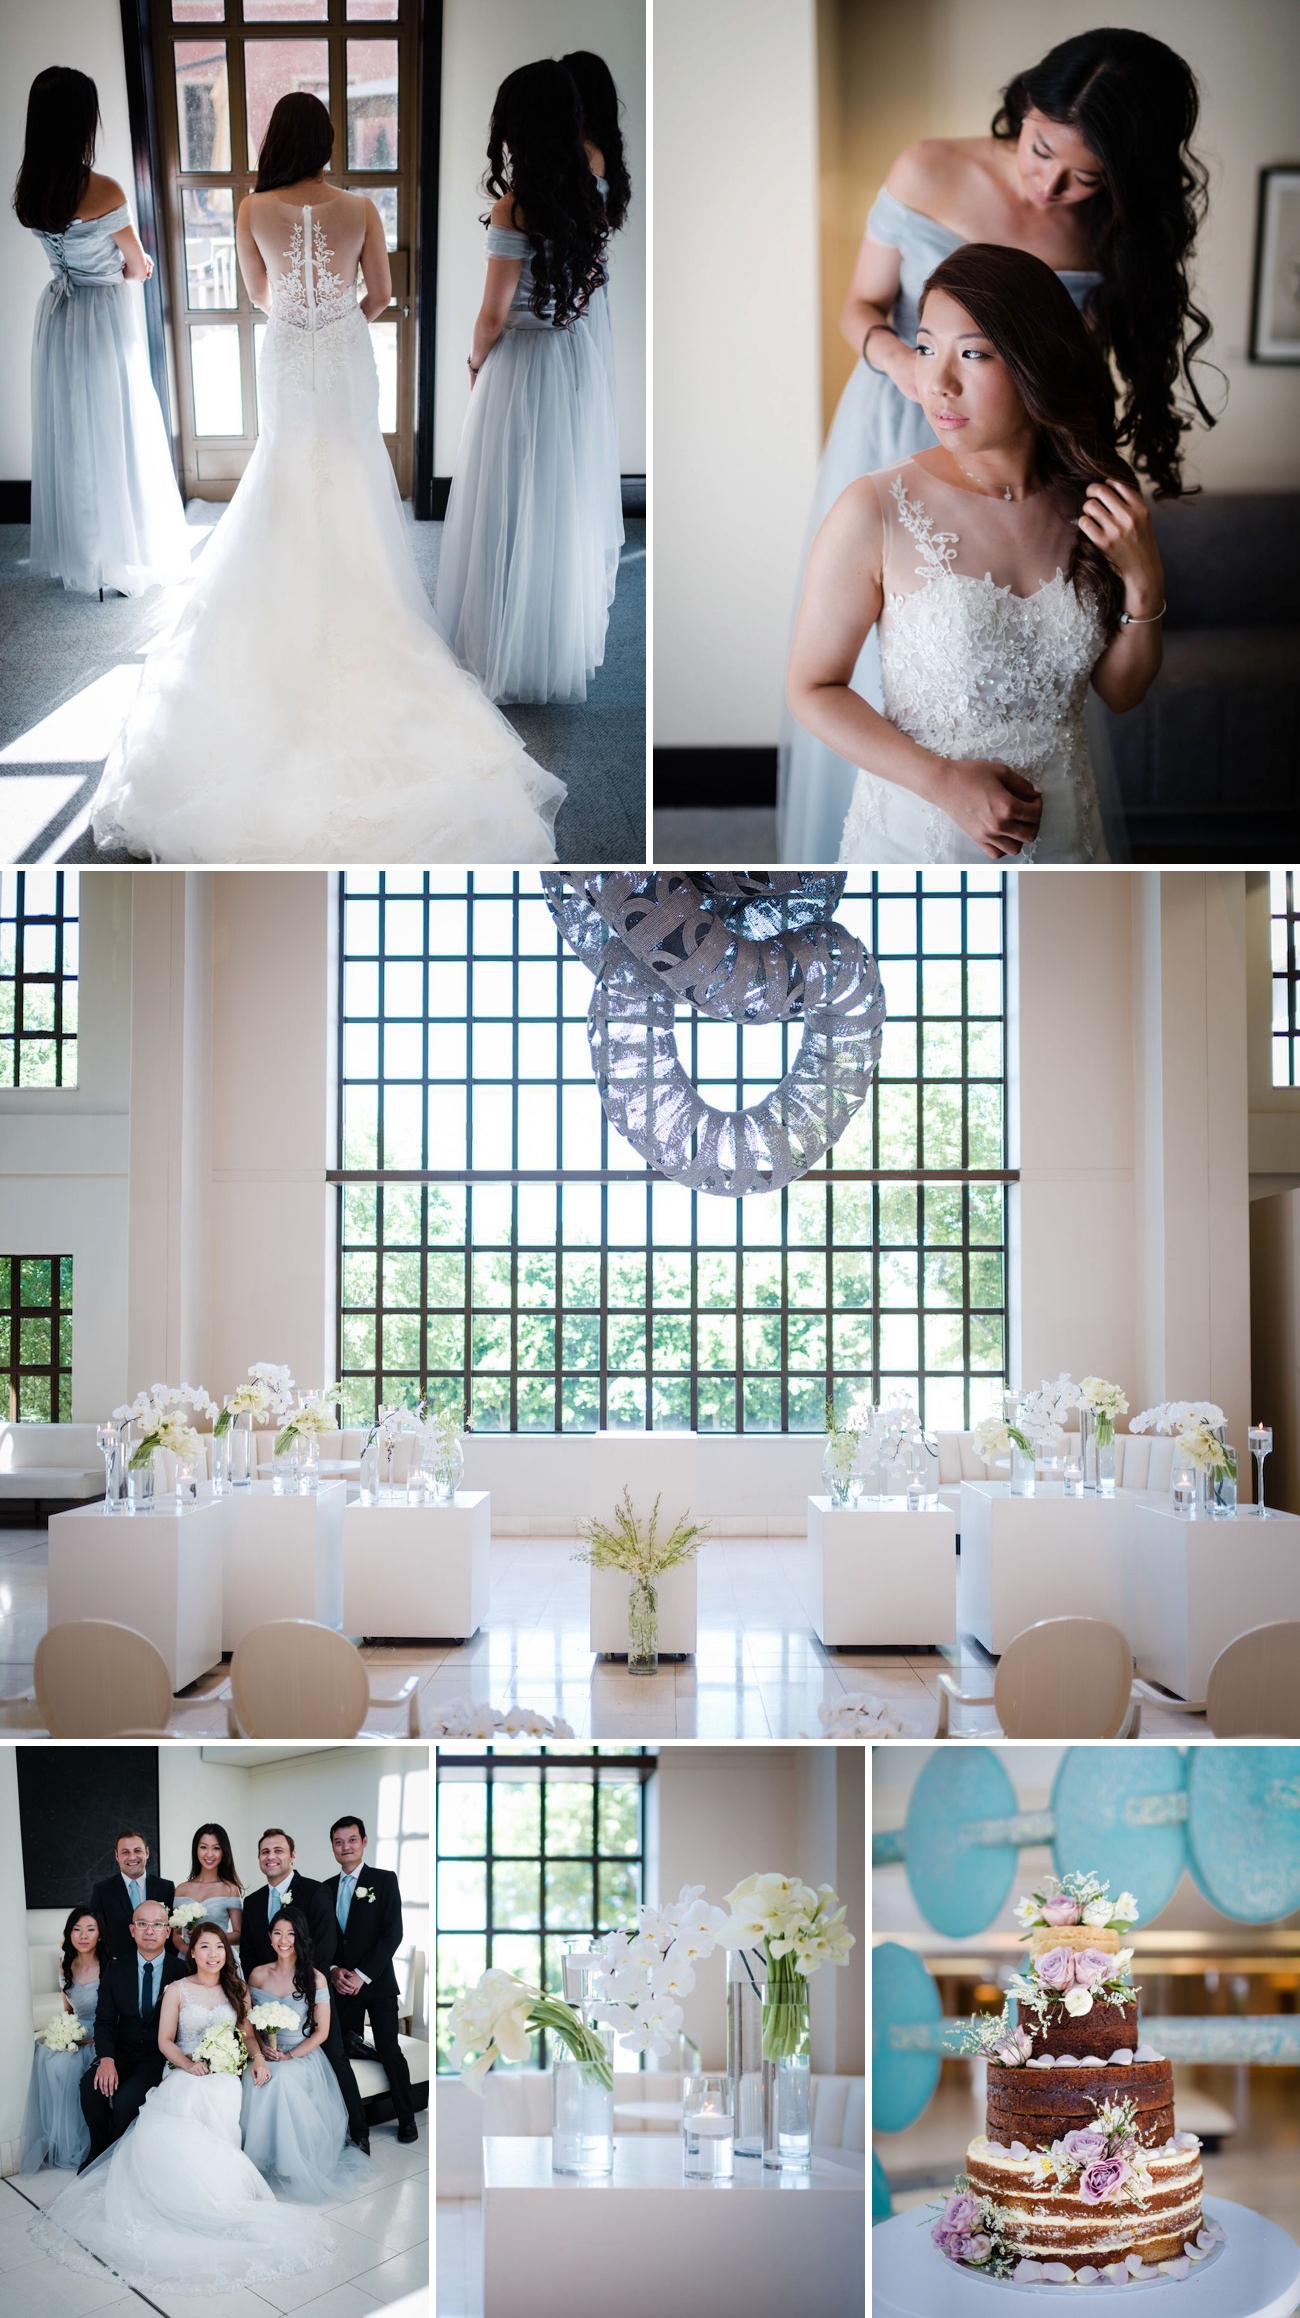 Elegant Modern Asian Wedding at The Campus by Wynand van der Merwe